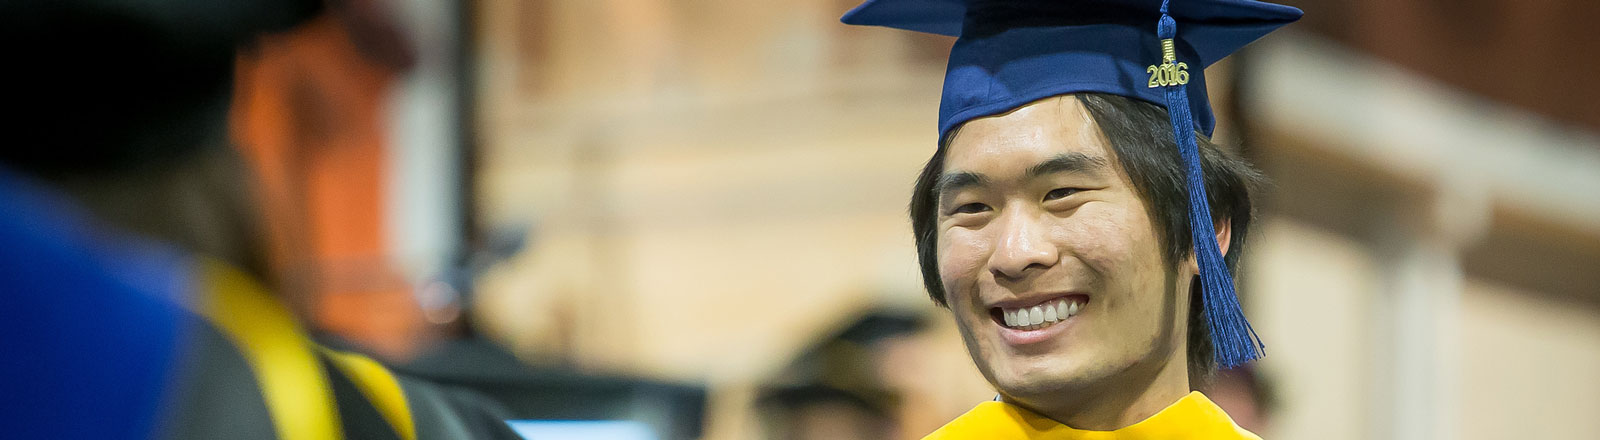 International student at commencement